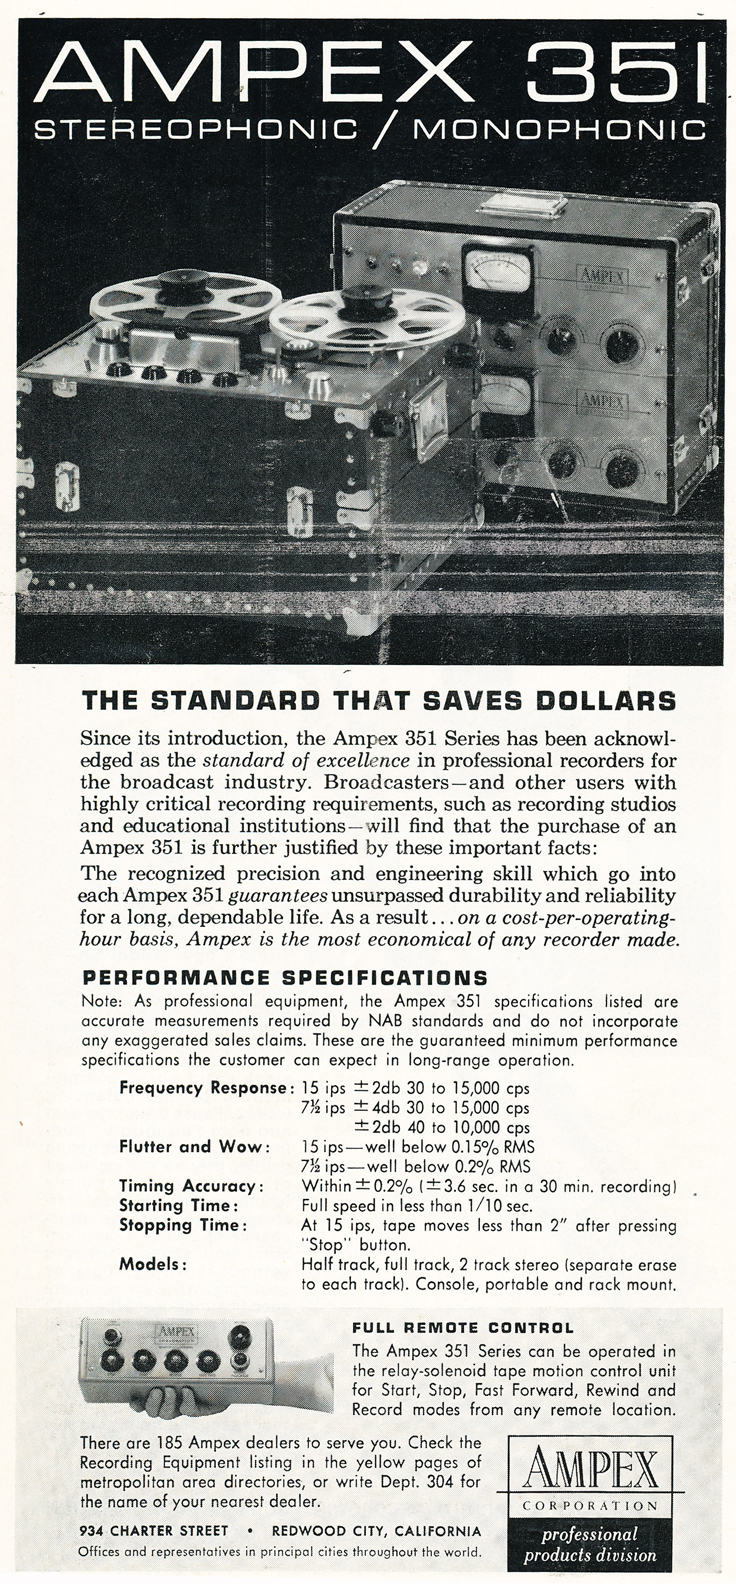 1959 ad for the Ampex 351 professional reel to reel tape recorder in Reel2ReelTexas.com's vintage recording collection